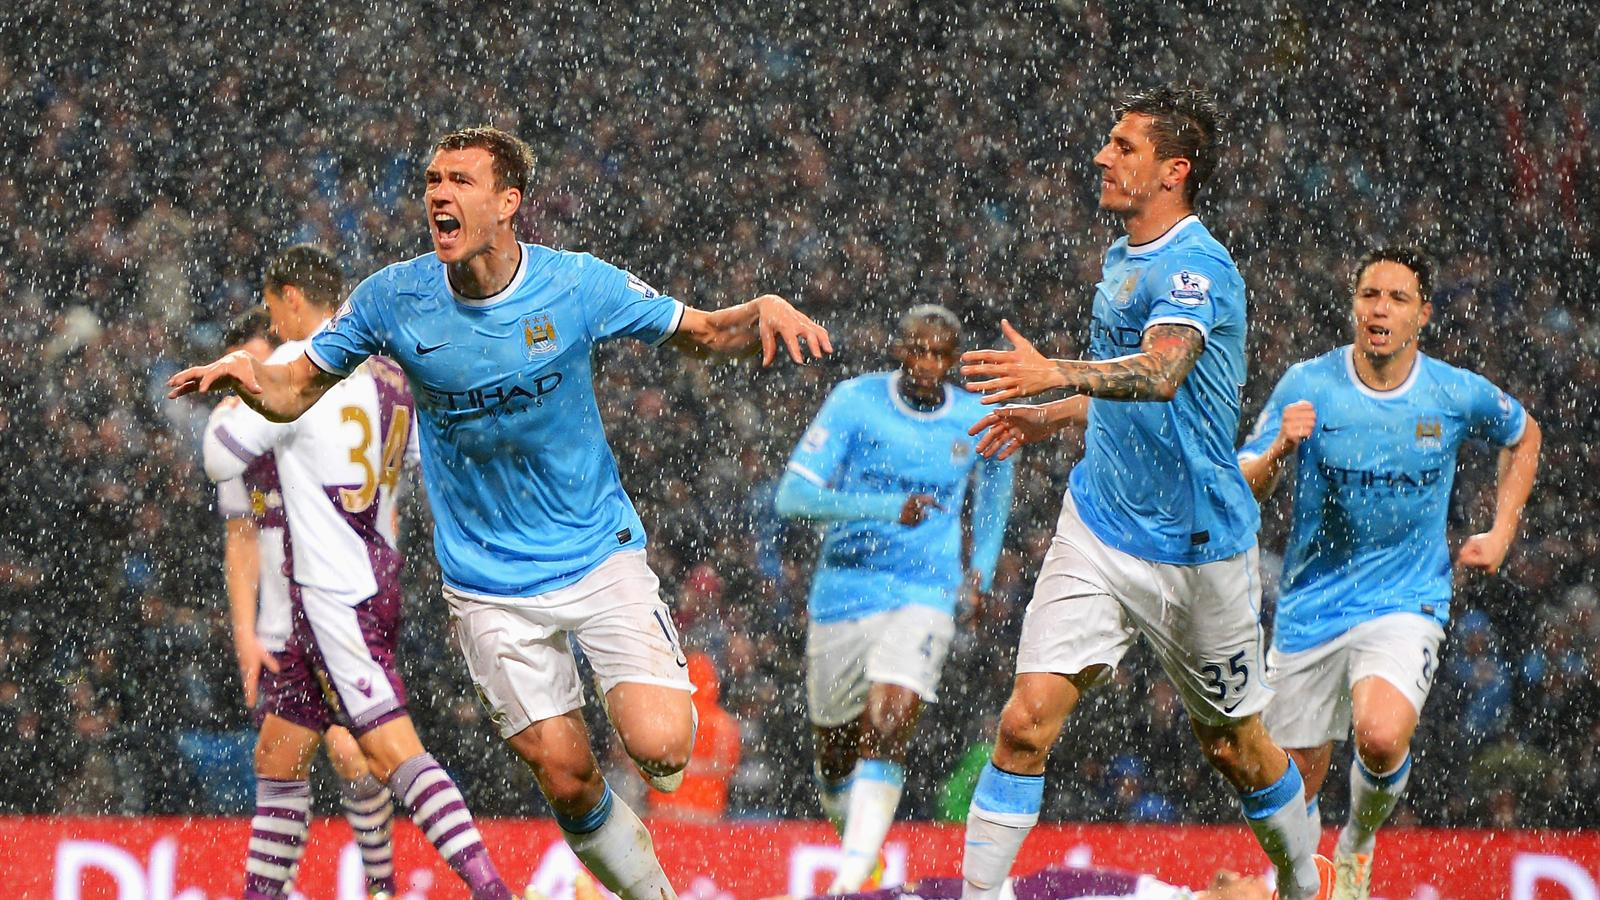 Bildtext:MANCHESTER, ENGLAND - MAY 07: Edin Dzeko of Manchester City celebrates scoring the opening goal during the Barclays Premier League match between Manchester City and Aston Villa at Etihad Stadium on May 7, 2014 in Manchester, England. (Photo by Mi